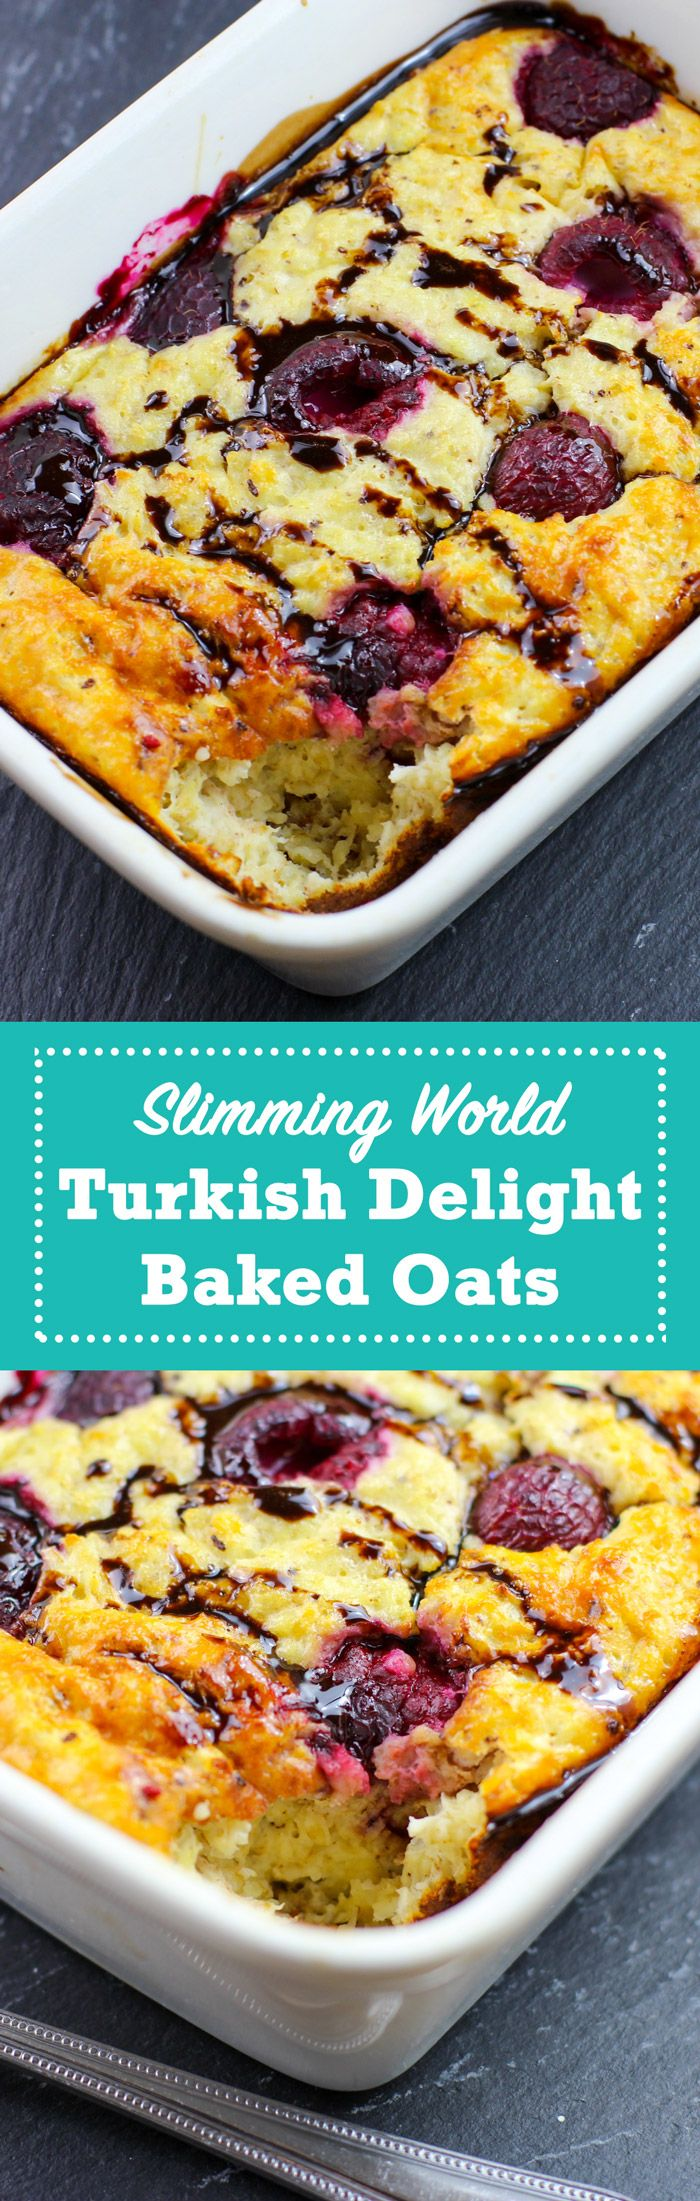 Healthy, Low Fat, Low Syn Turkish Delight Baked Oats http://pinchofnom.com/recipes/low-syn-turkish-delight-baked-oats-slimming-world/